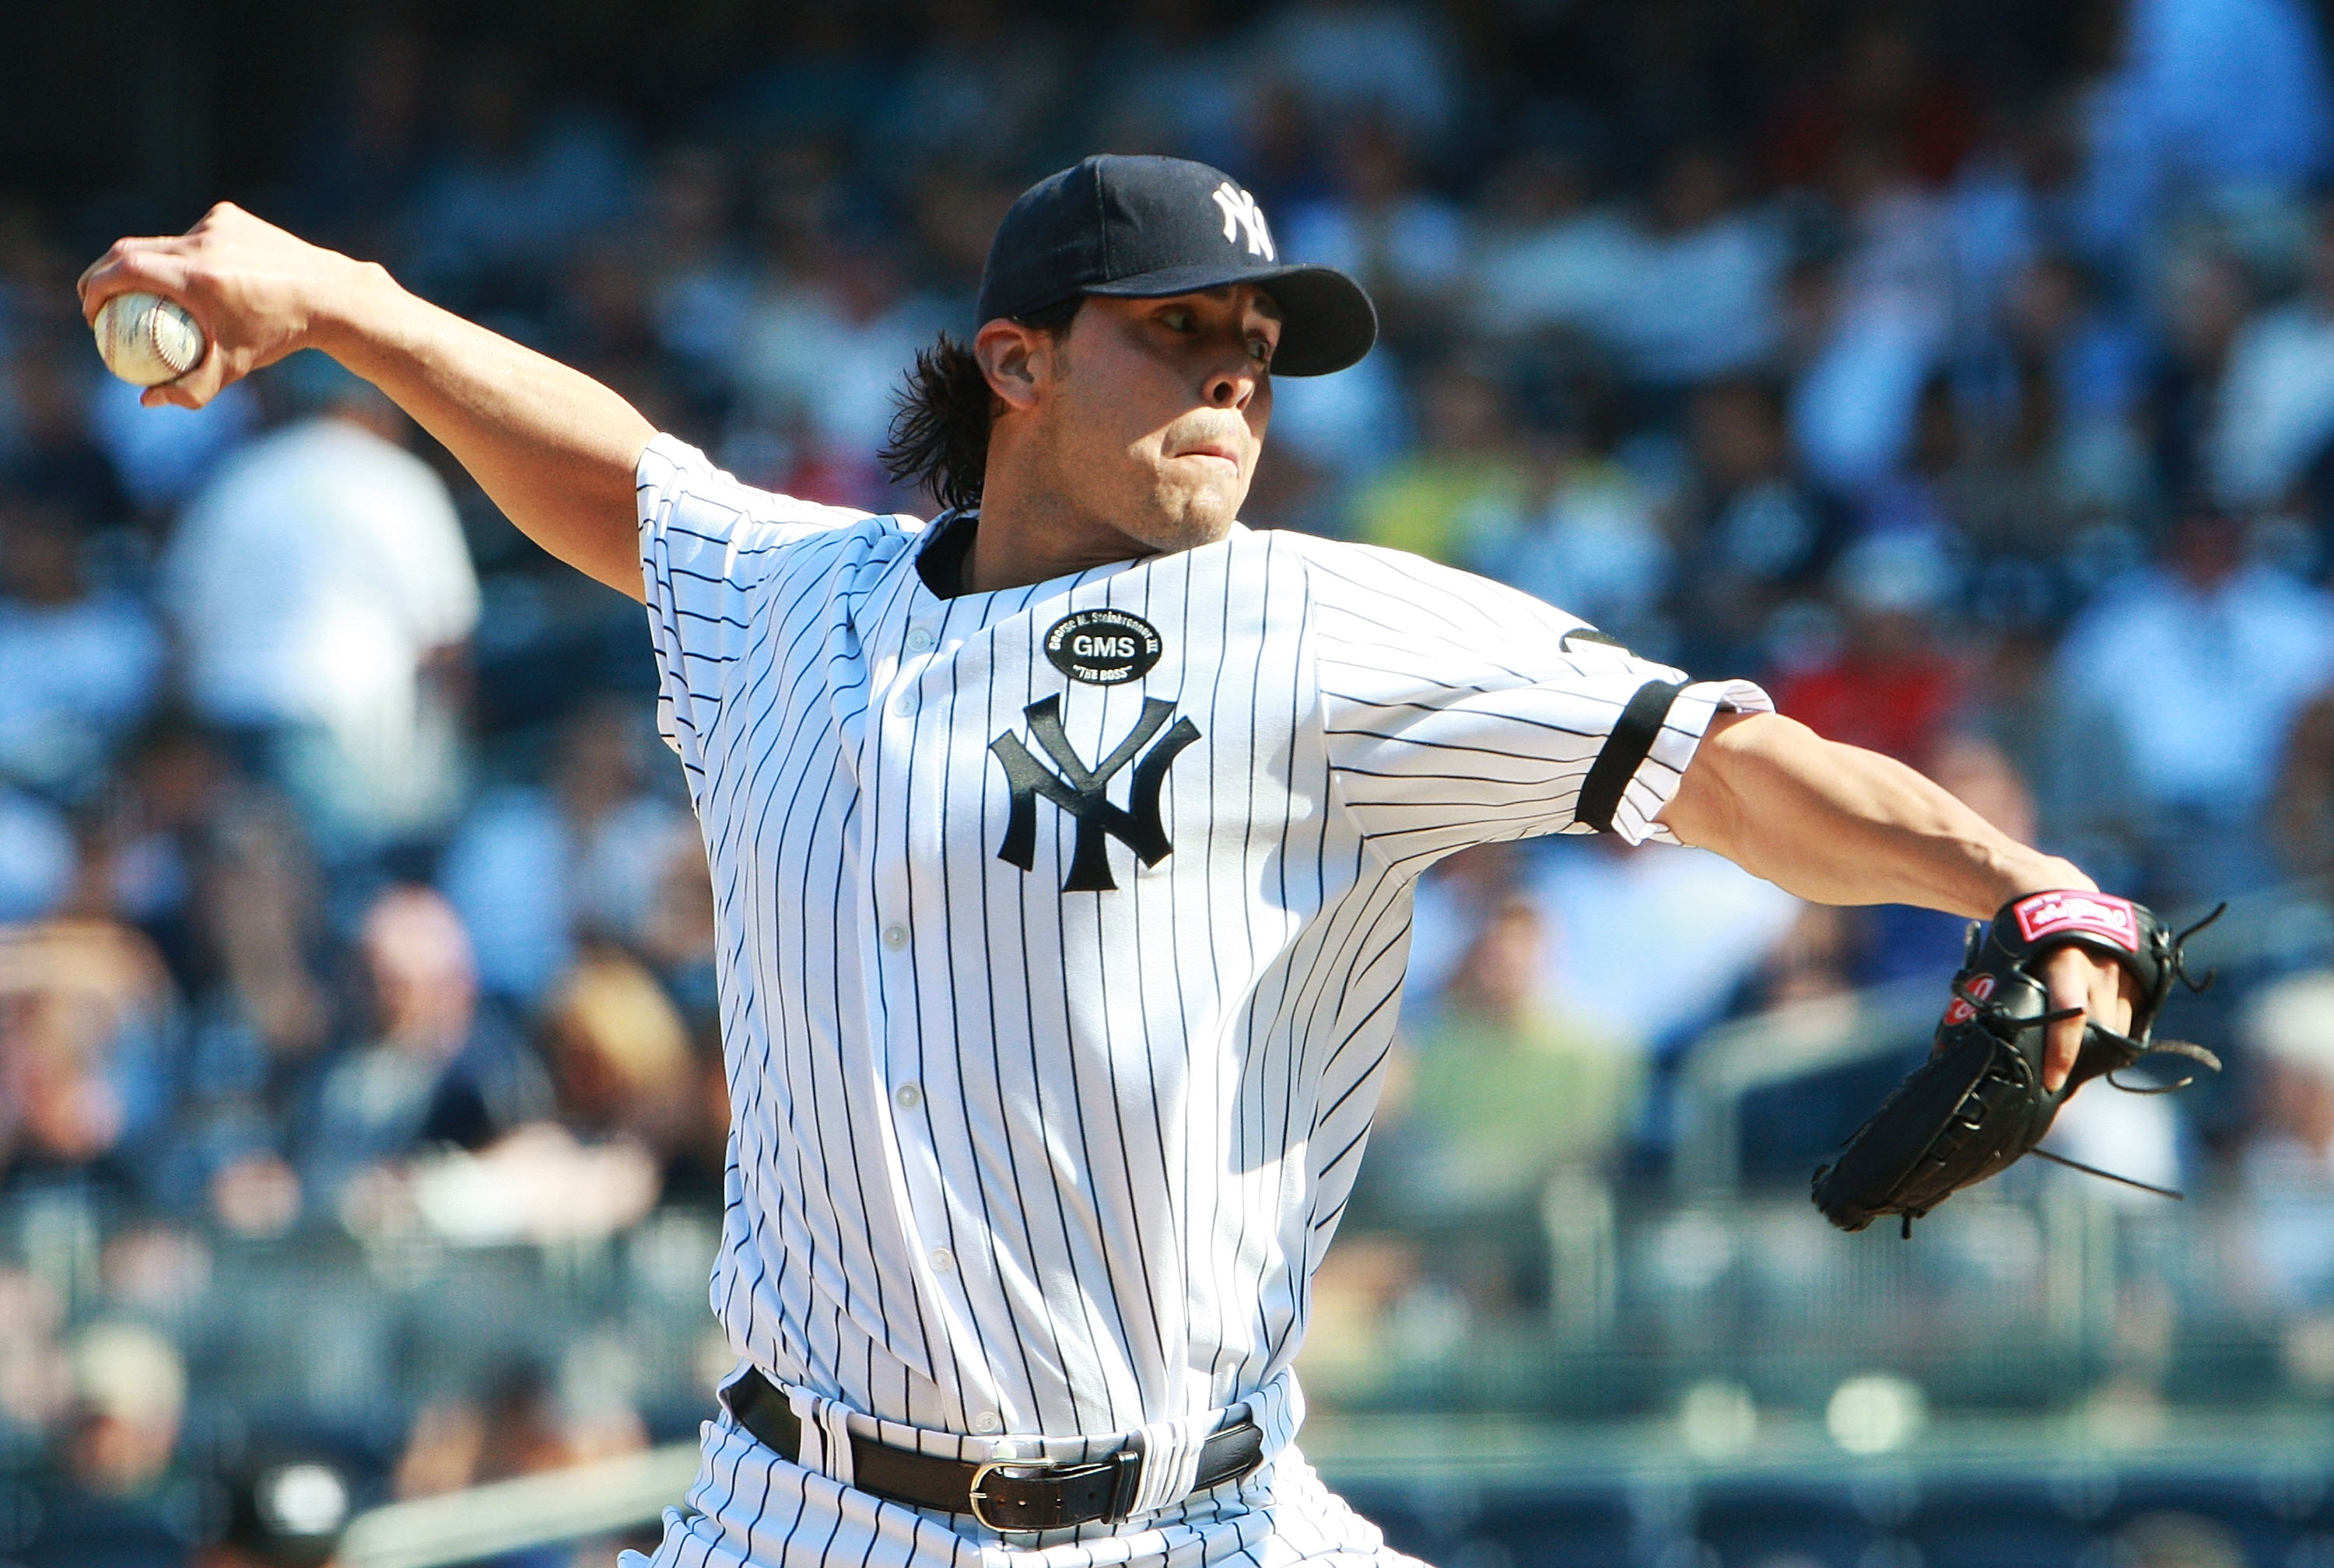 NEW YORK - AUGUST 19:  Sergio Mitre #45 the New York Yankees pitches against the Detroit Tigers at Yankee Stadium on August 19, 2010 in the Bronx borough of New York City.  (Photo by Andrew Burton/Getty Images)